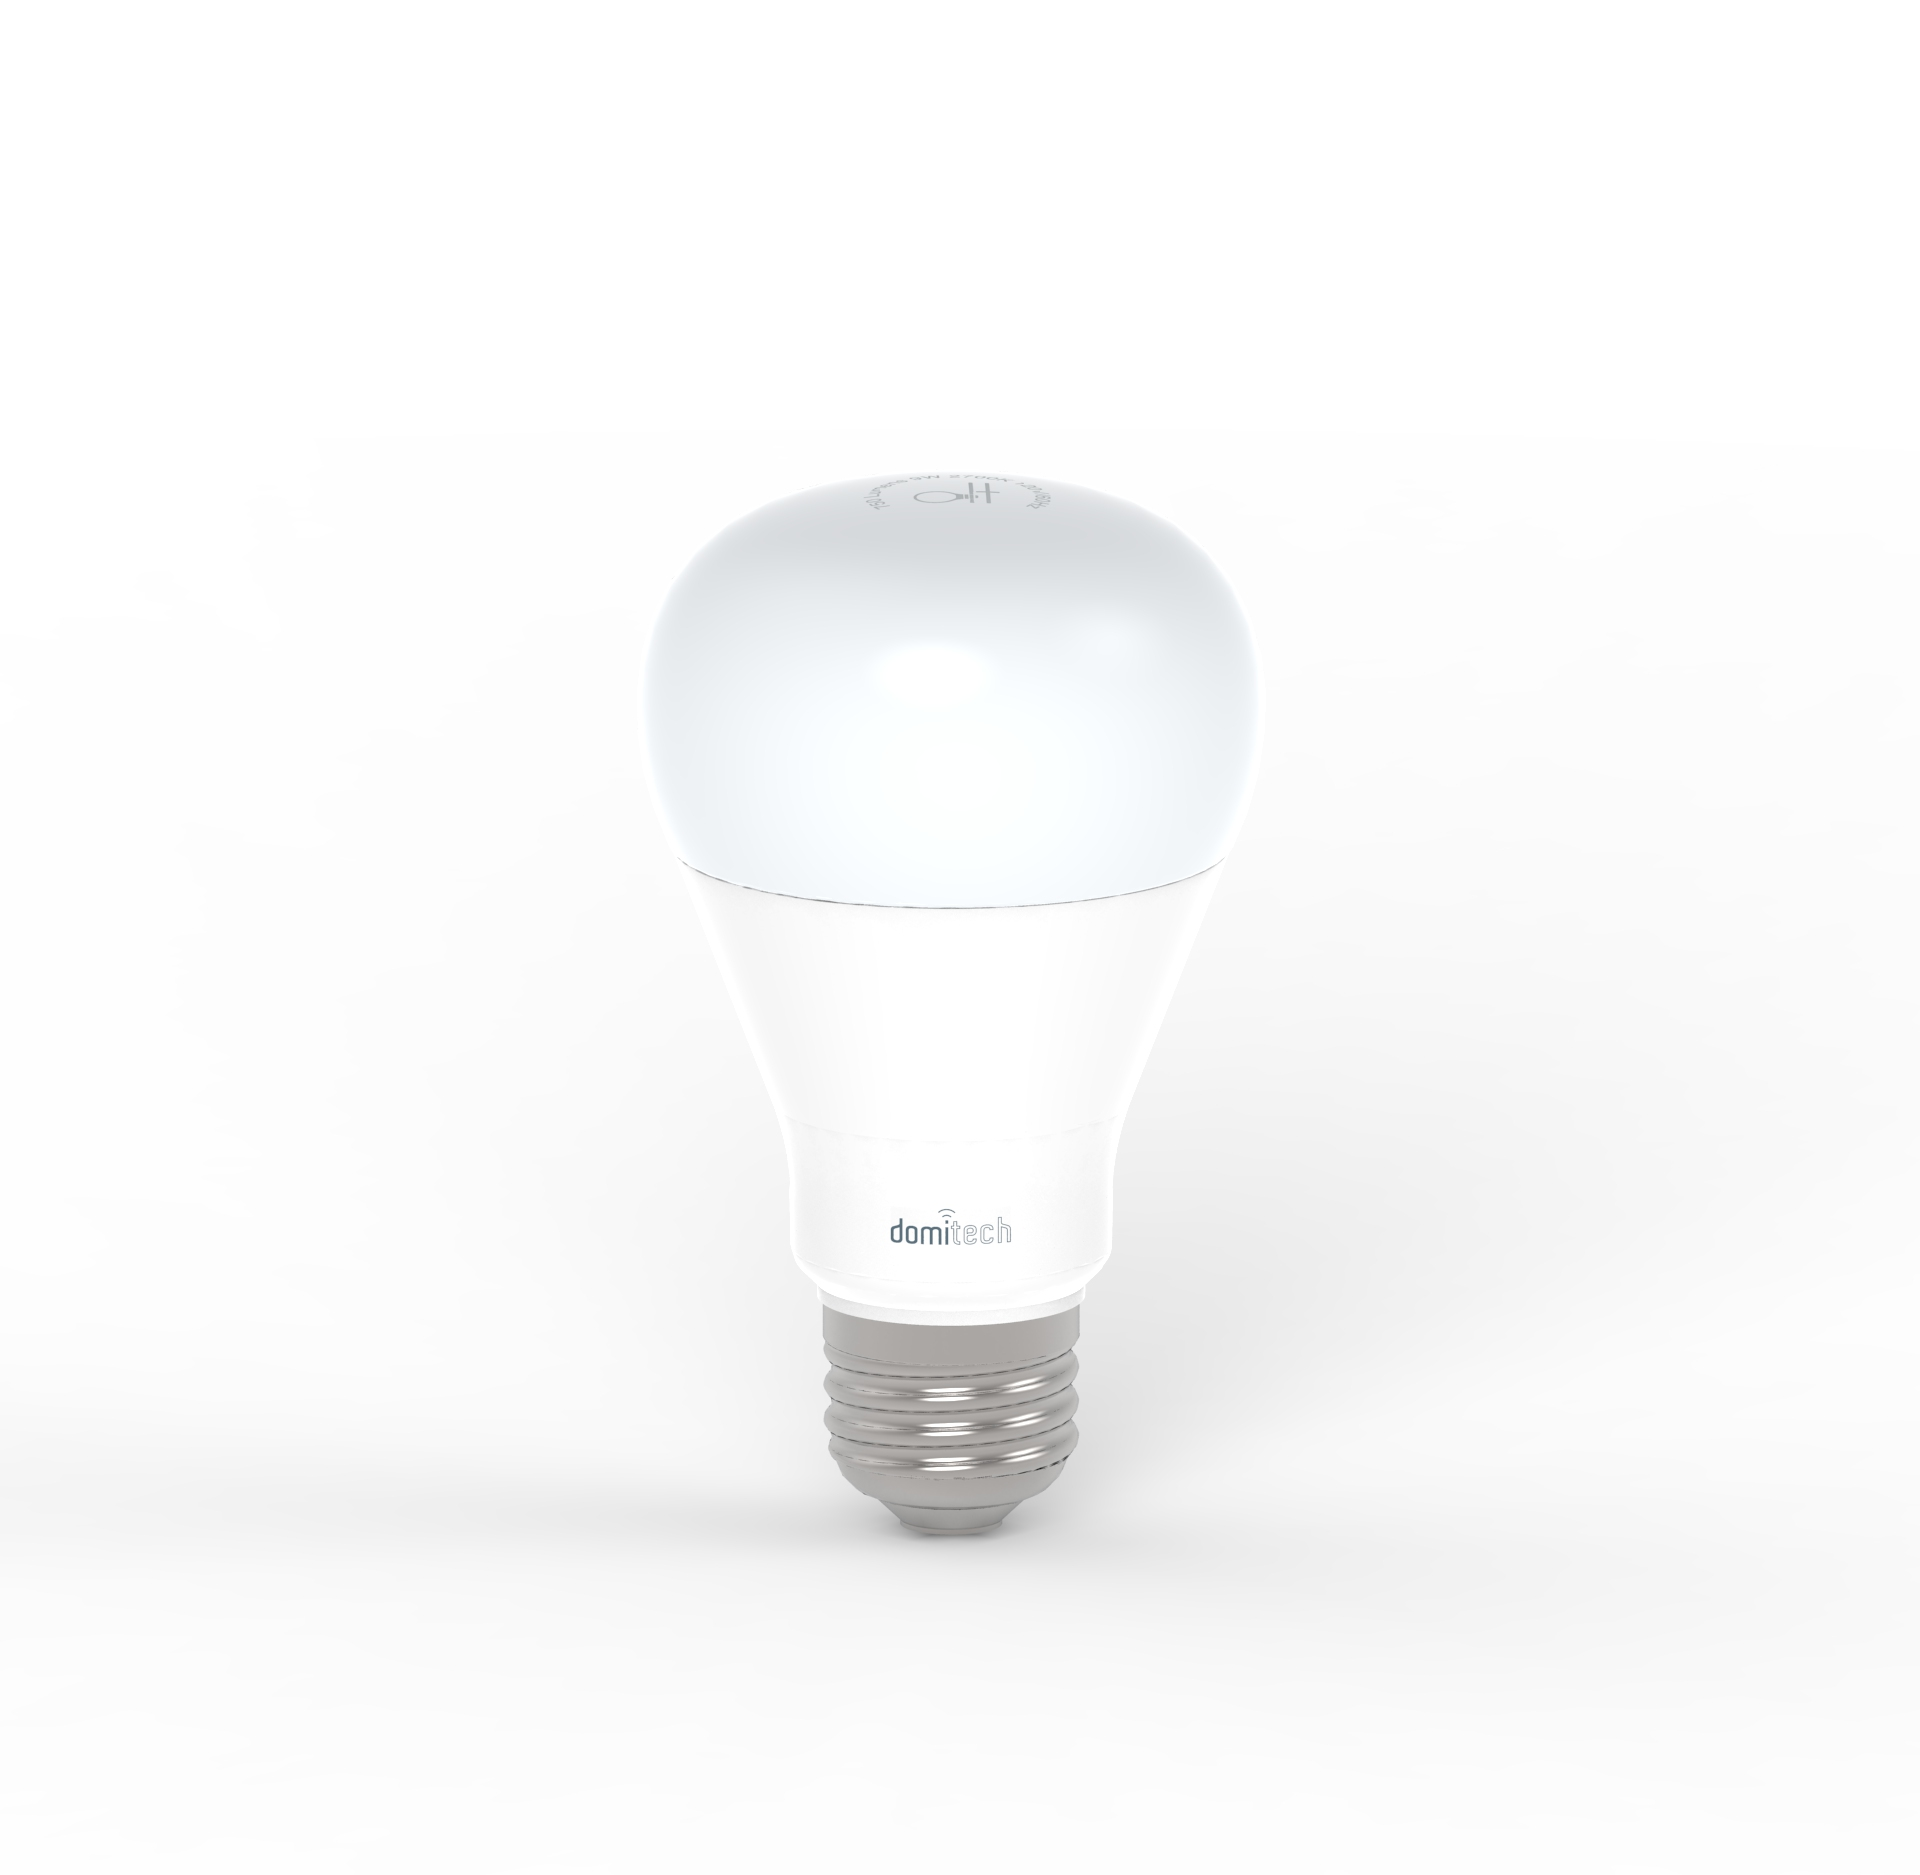 light pdp com buyphilips lewis bulb at online johnlewis rsp main white can john philips bulbs dimmable led cool